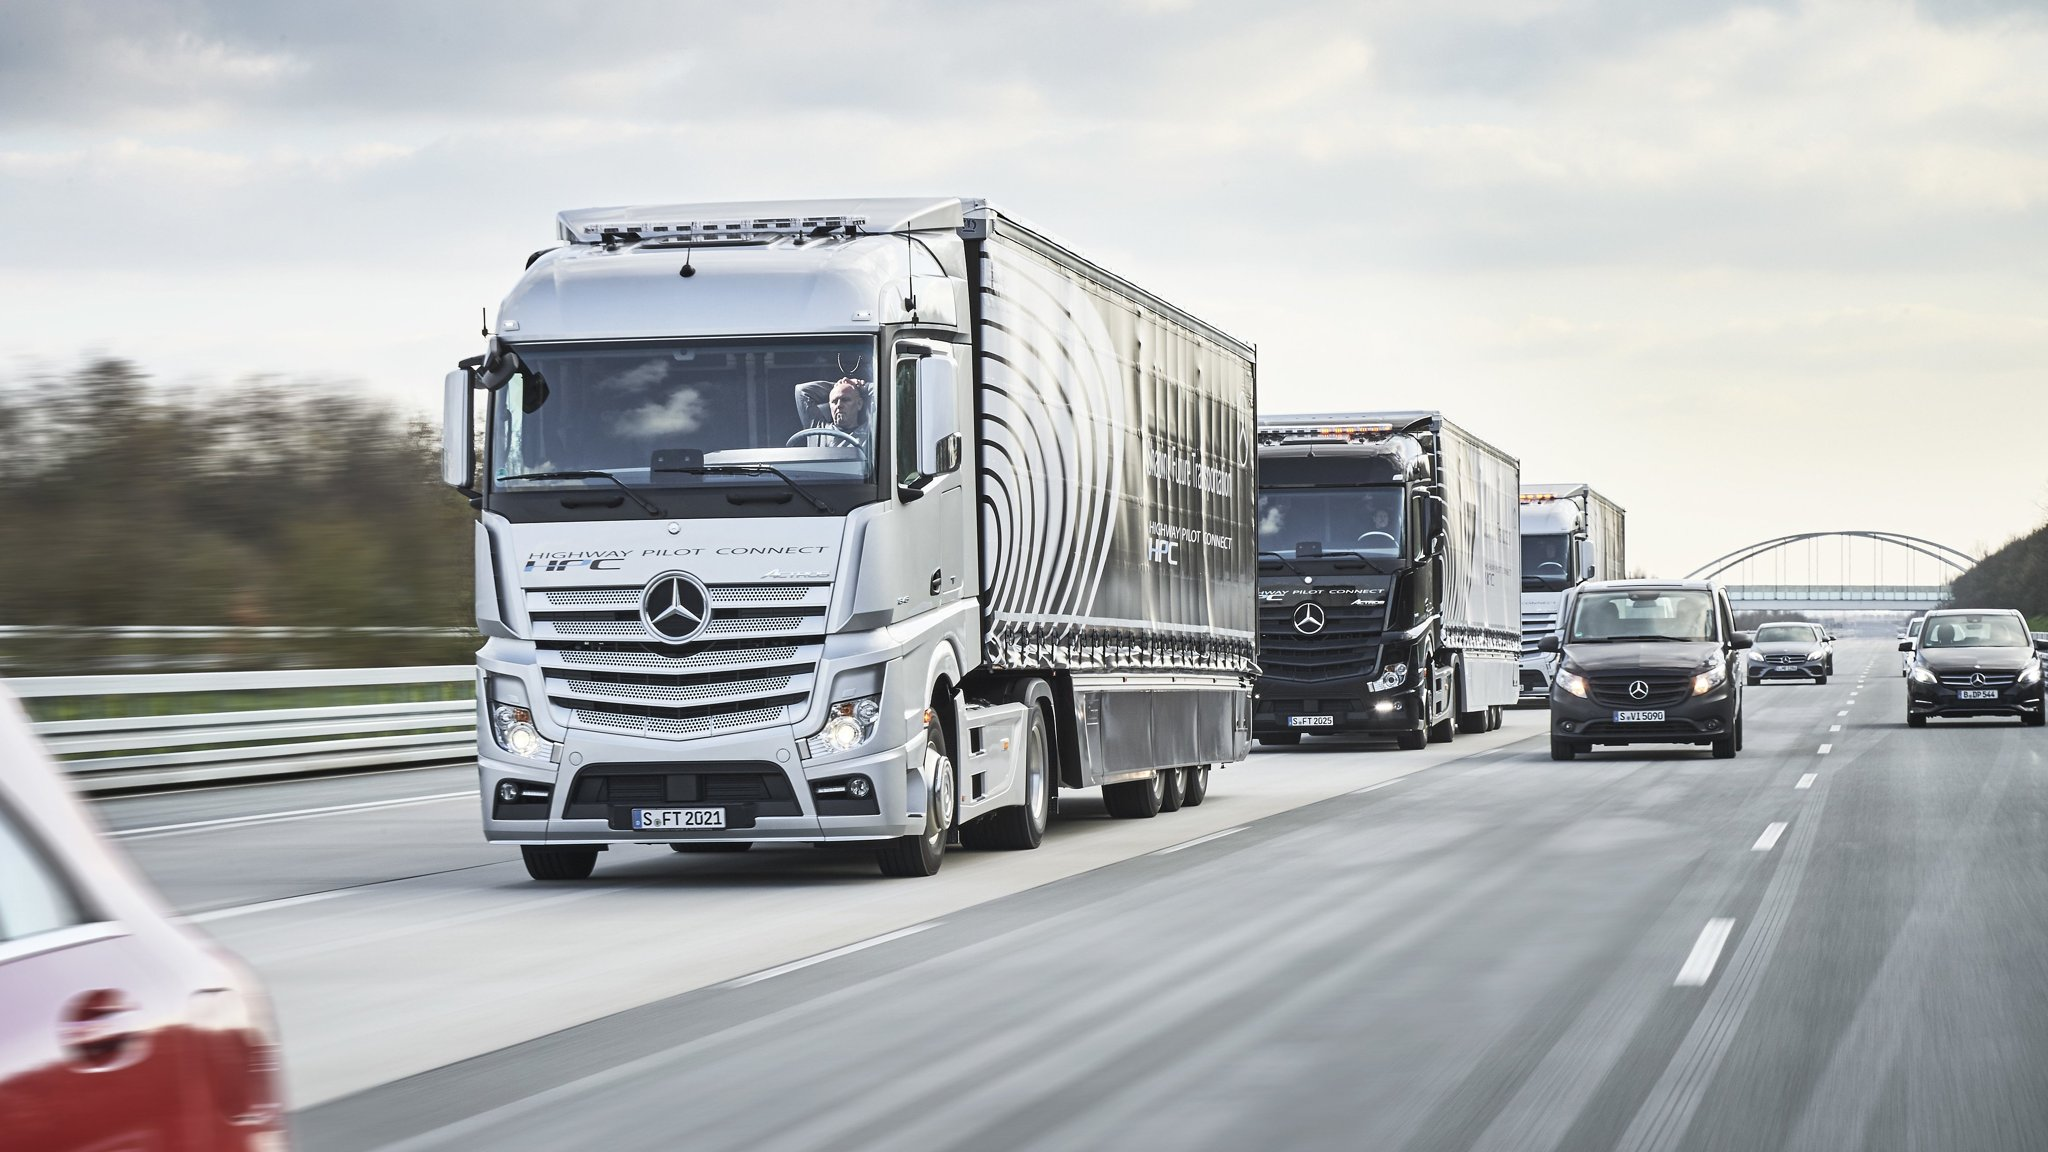 Daimler trucks plans self driving lorries at airports